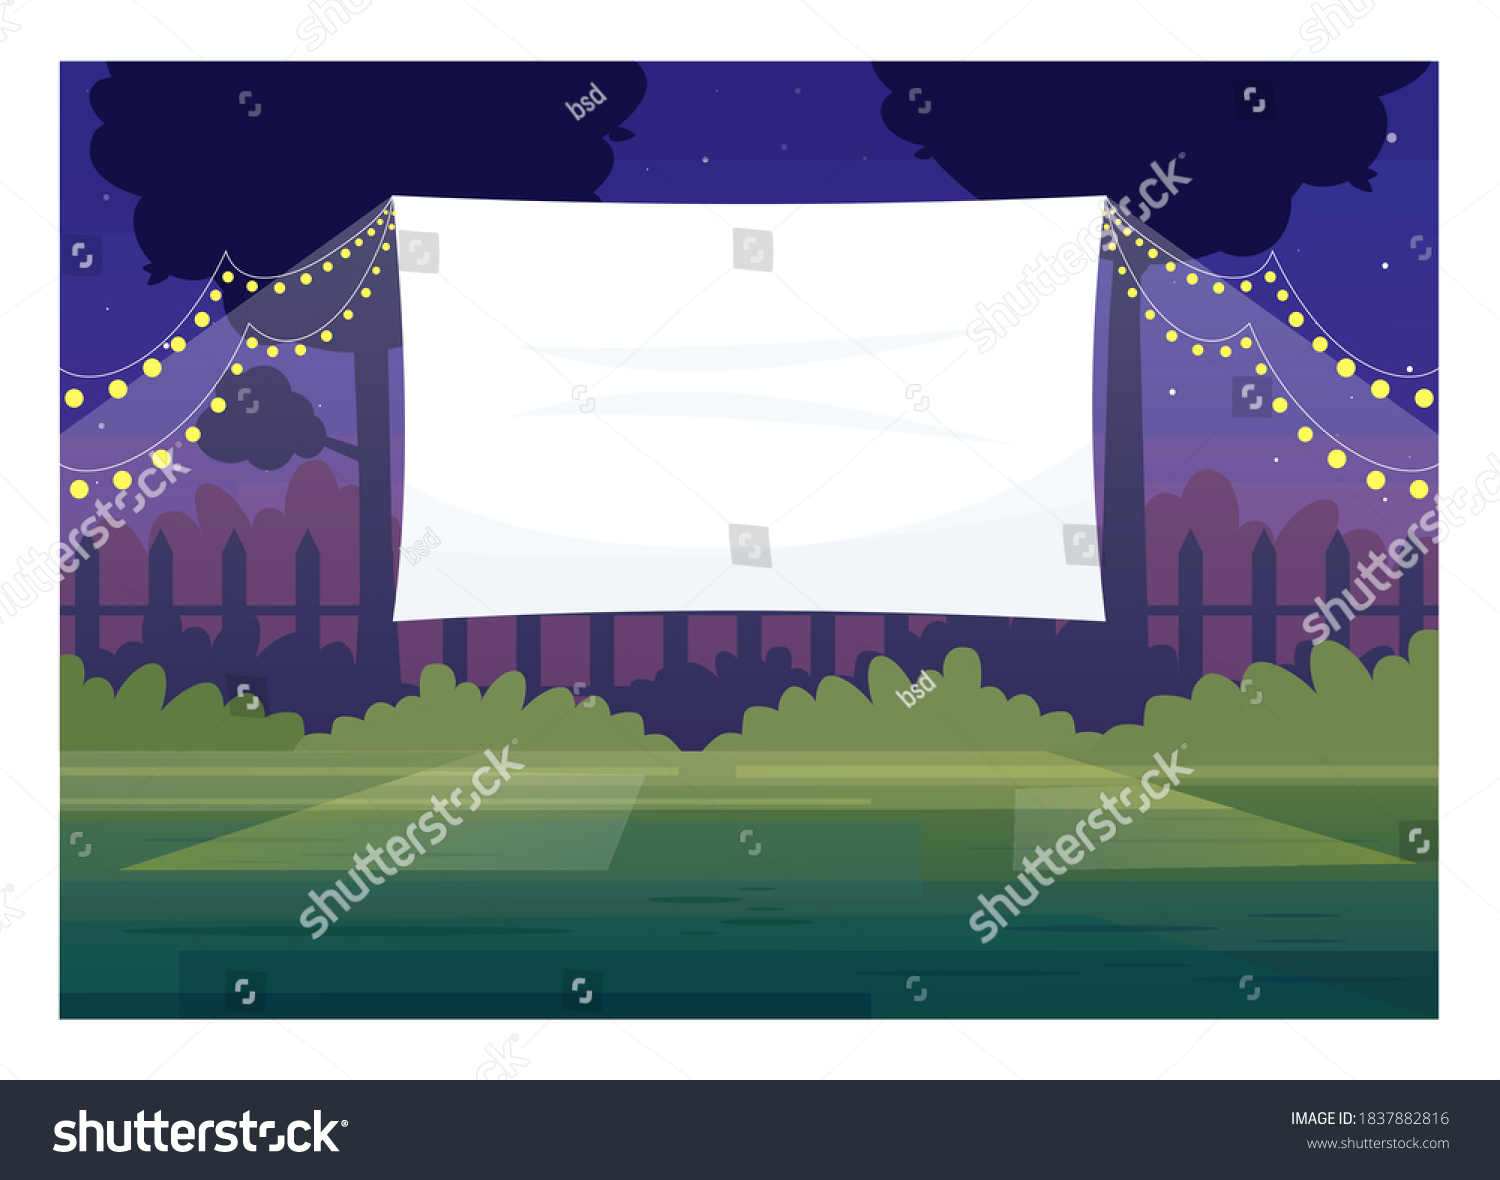 Festive outdoor cinema screen semi flat vector illustration. Open air decorated place with lanterns. Film premiere outside. Public park. Outdoors movie night 2D cartoon scene for commercial use #1837882816